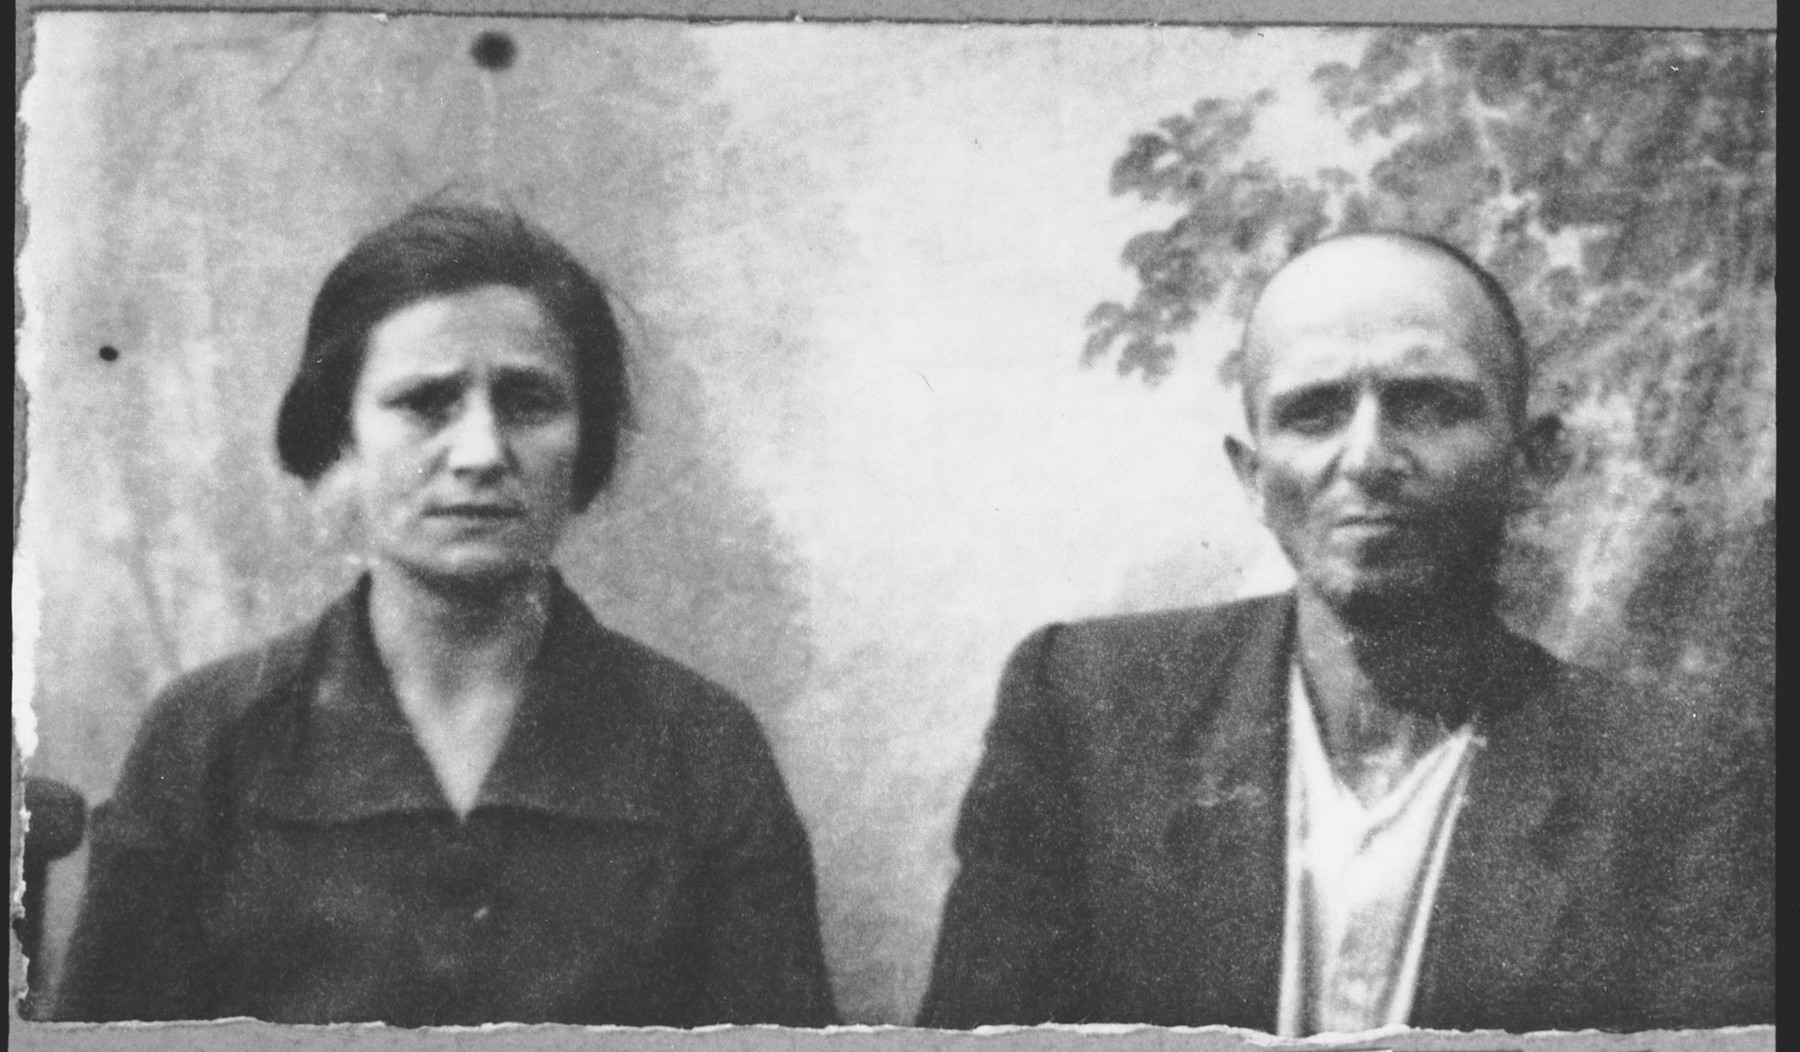 Portrait of Solomon Aroesti, son of Isak Aroesti, and his wife, Rebeka.  Solomon was a cap maker.  They lived at Dr. Raisa 131 in Bitola.